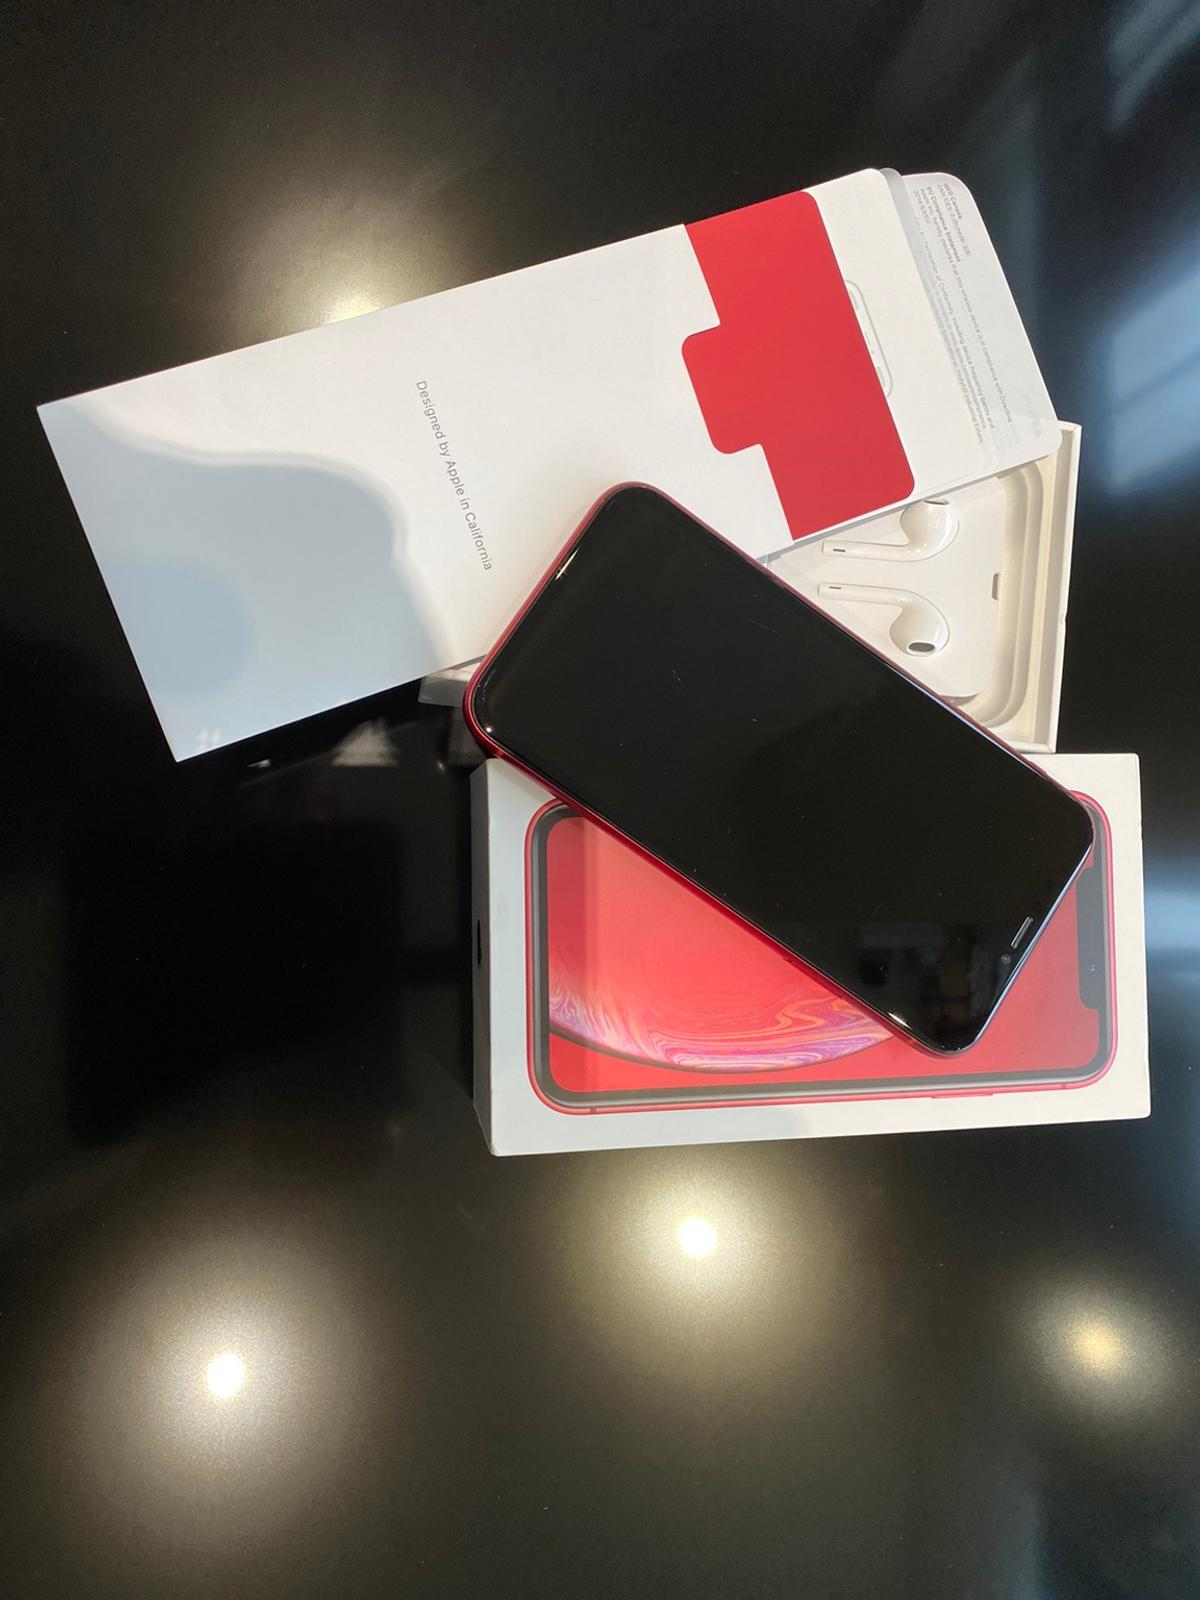 iPhone XR 64GB Product Red in excellent condition. Factory unlocked/open to all networks. No marks on the body and only slight signs of use on the screen. Comes with original unused charging cable and in box with paperwork and will be fitted with a high quality tempered glass screen protector. £395 ovno. Can be delivered locally if necessary. Message or Call 01484 482888 (daytime) if you require any further information.